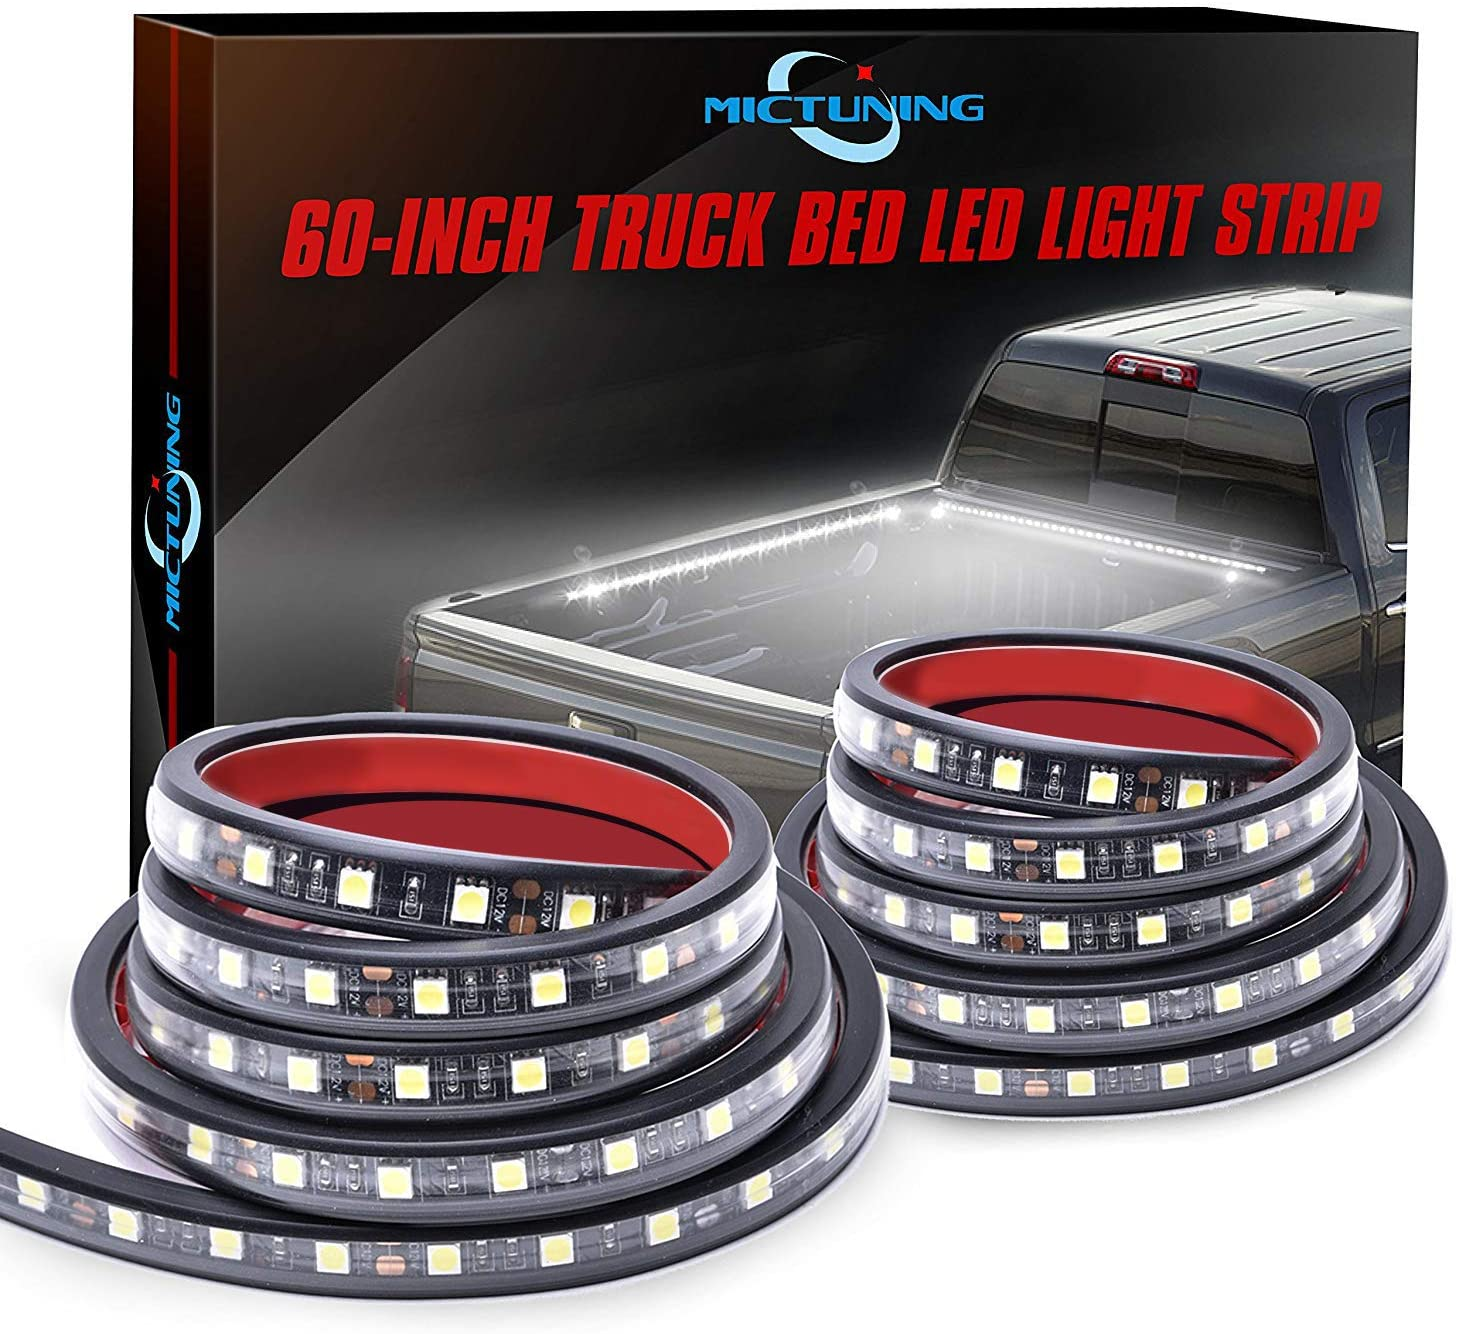 MICTUNING 60-Inch White LED Cargo Truck Bed Light Strips